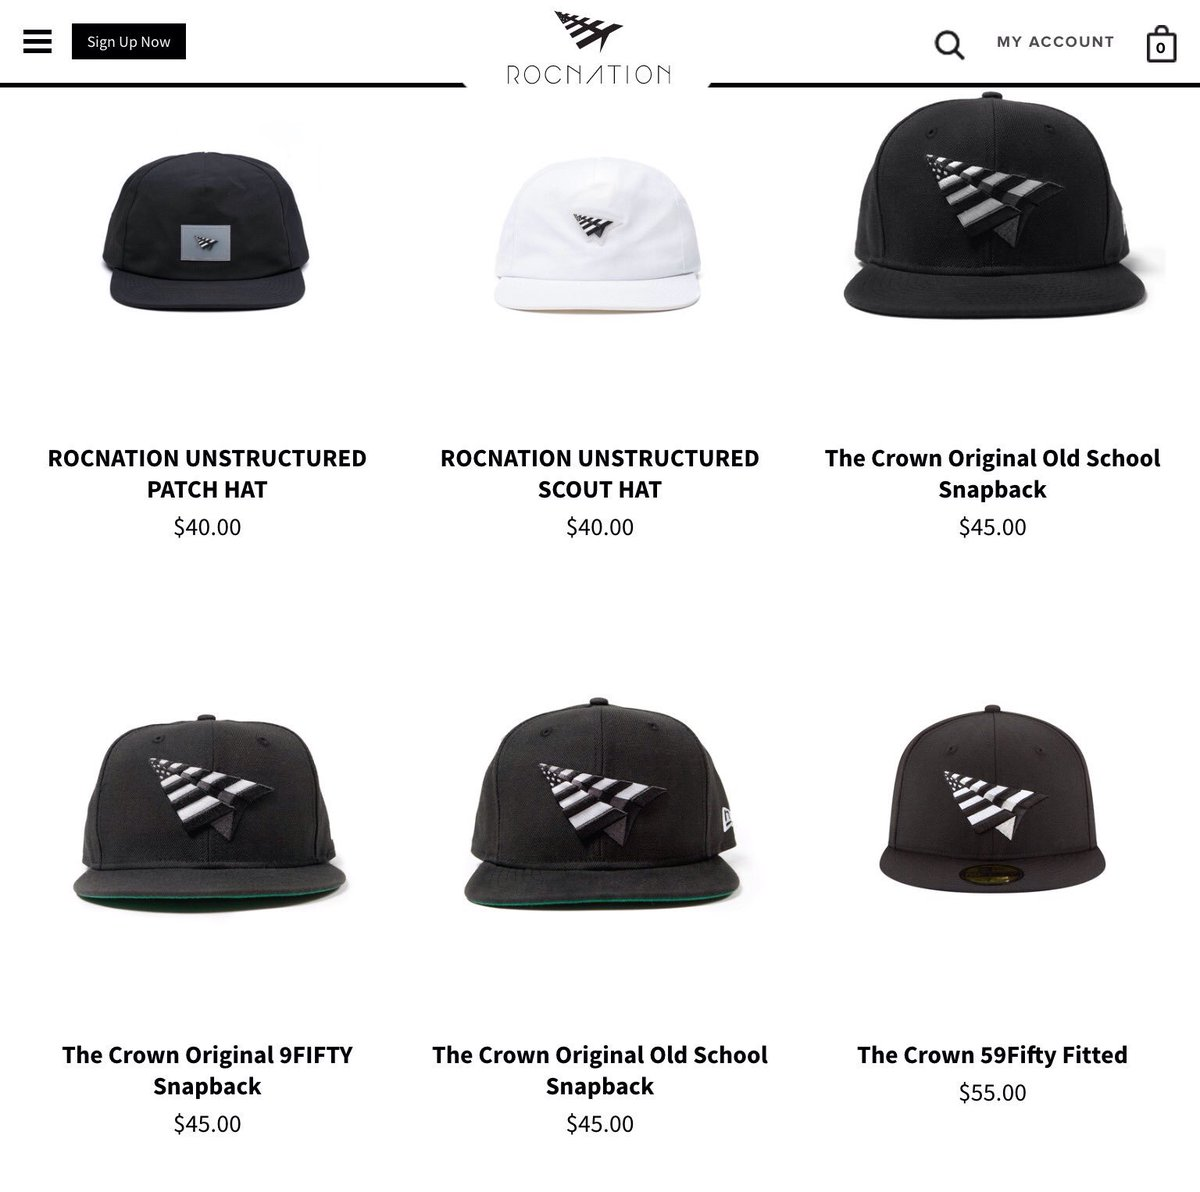 3492b35a2d6640 jlin7 wearing the roc nation hat confirms his co agent roger montgomery is  now part of